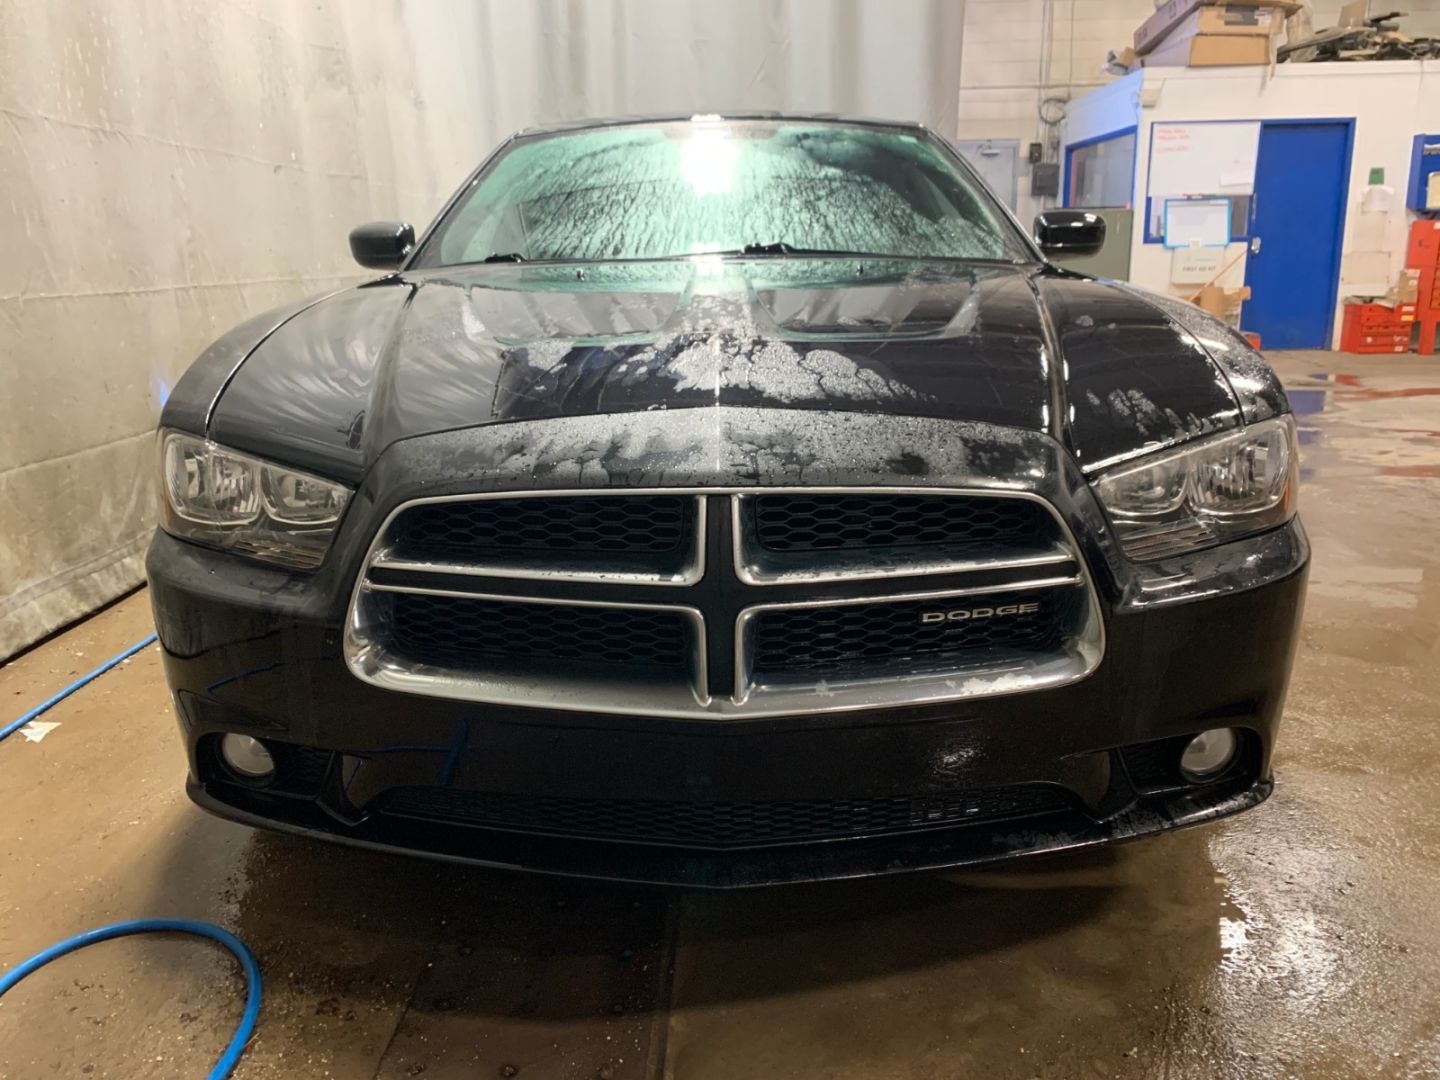 2011 Dodge Charger Rallye for sale in Red Deer, Alberta